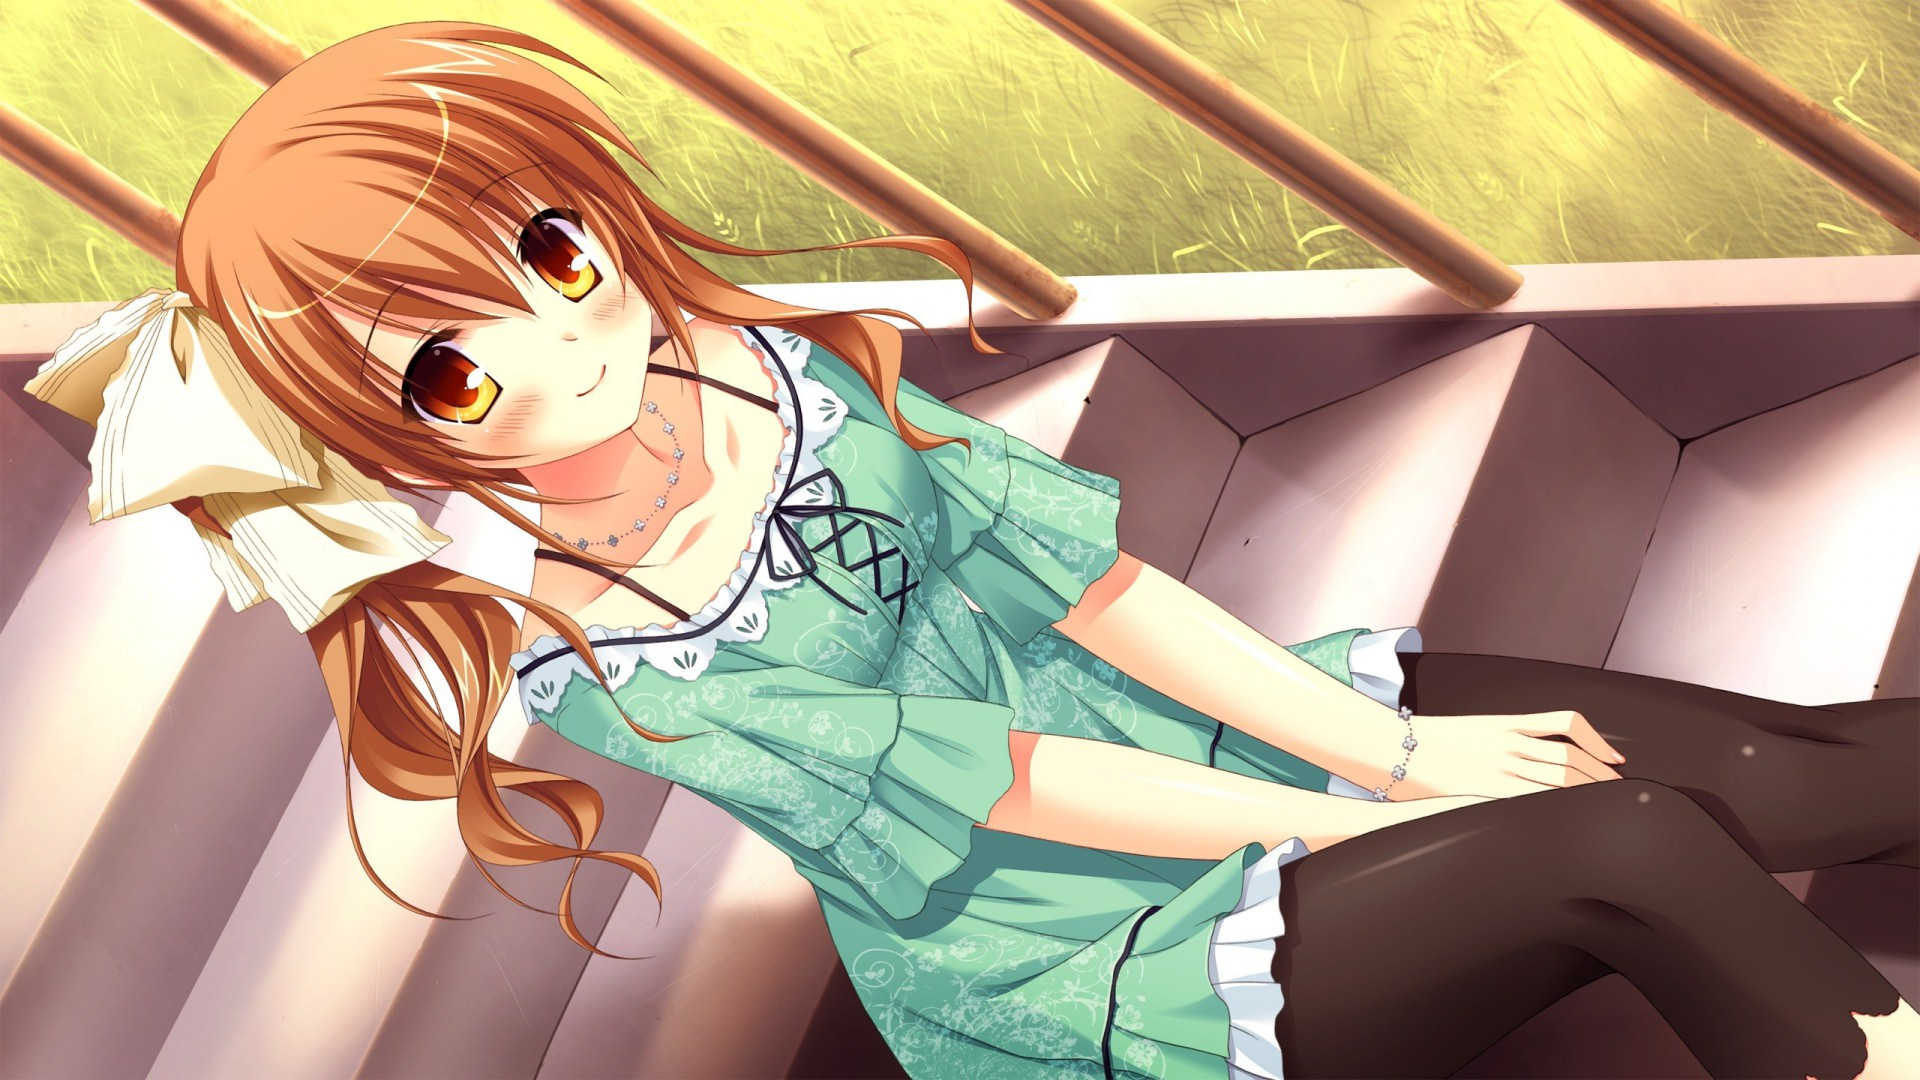 Cute Girls Dresess Cute Anime Wallpaper Hd 24 Anime Backgrounds Wallpapers Images Pictures